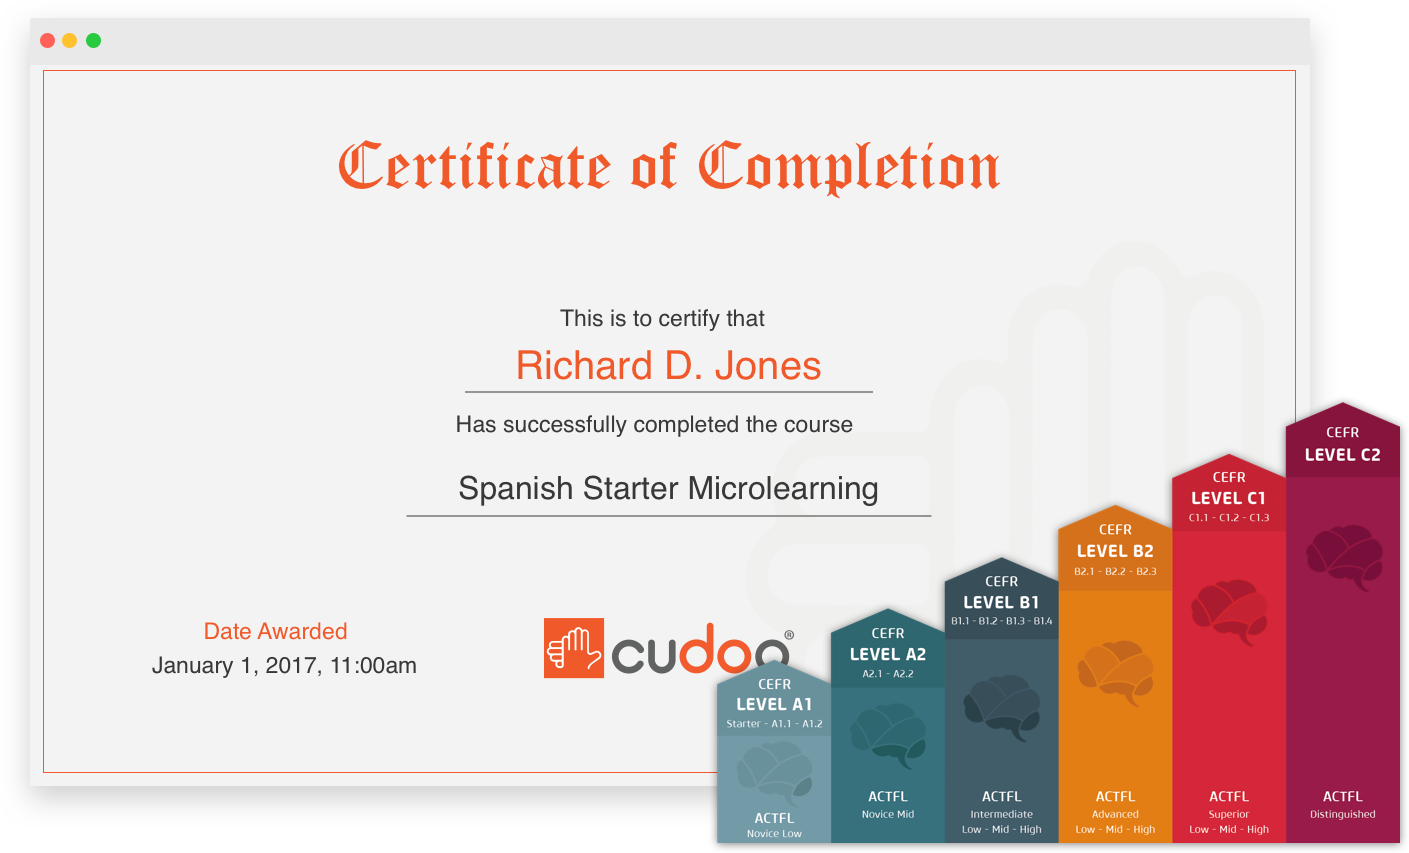 Cudoo – When you learn, the world learns – Online Courses for Everyone